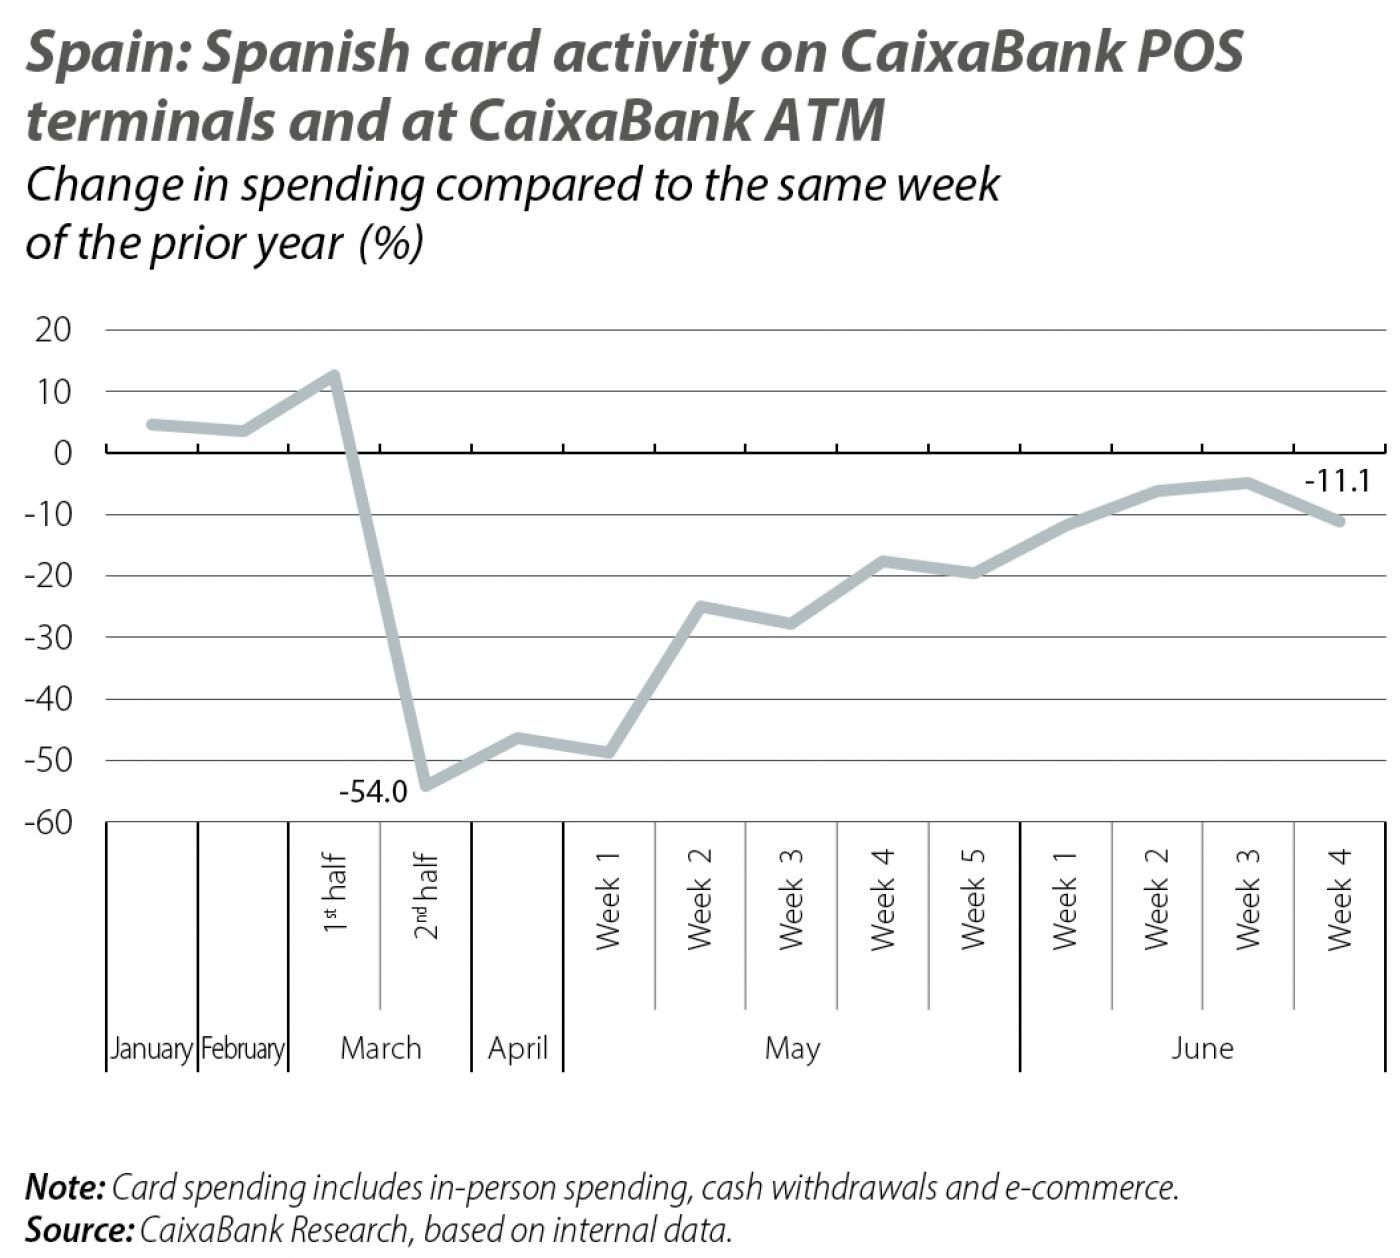 Spain: Spanish card activity on CaixaBank POS terminals and at CaixaBank ATM